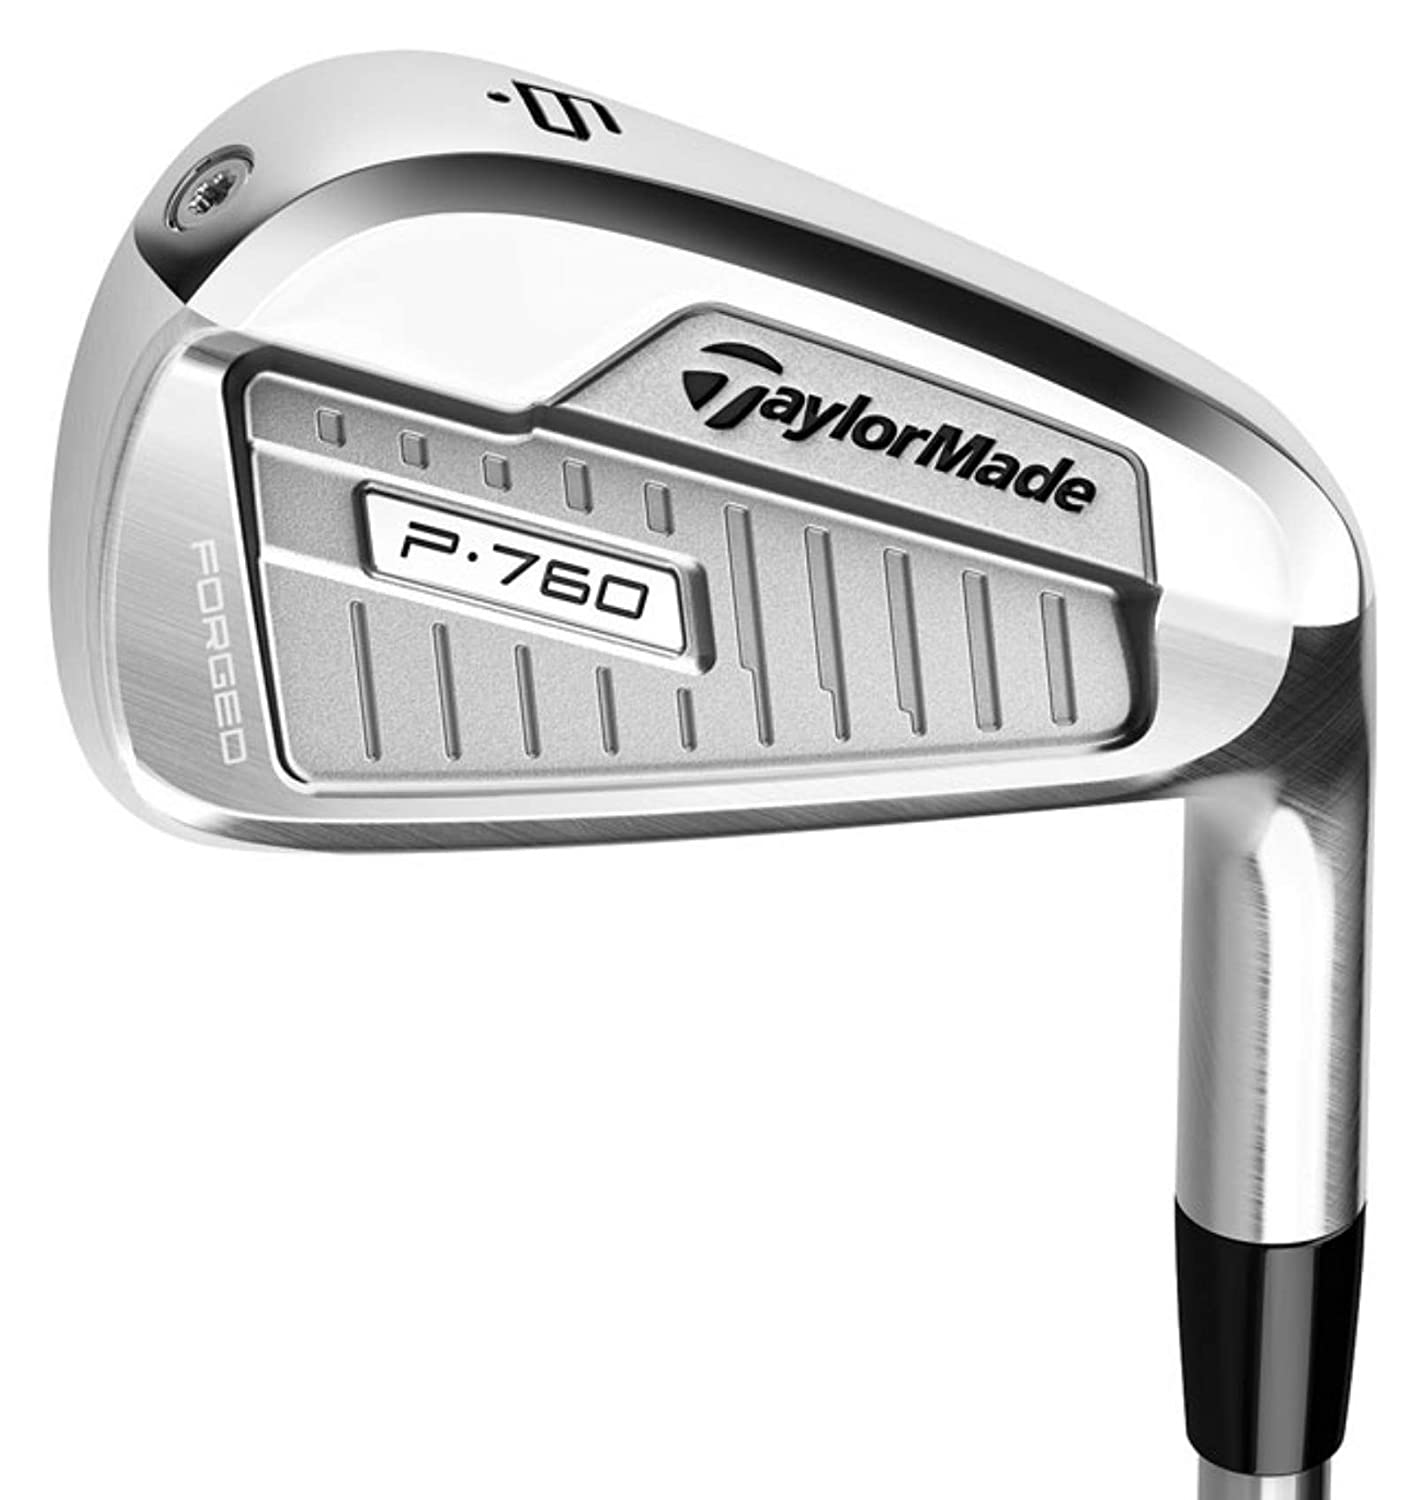 TaylorMade Golf P760 P 760 アイアン 4-AW 8 クラブ KBS $-Taper X XS LH